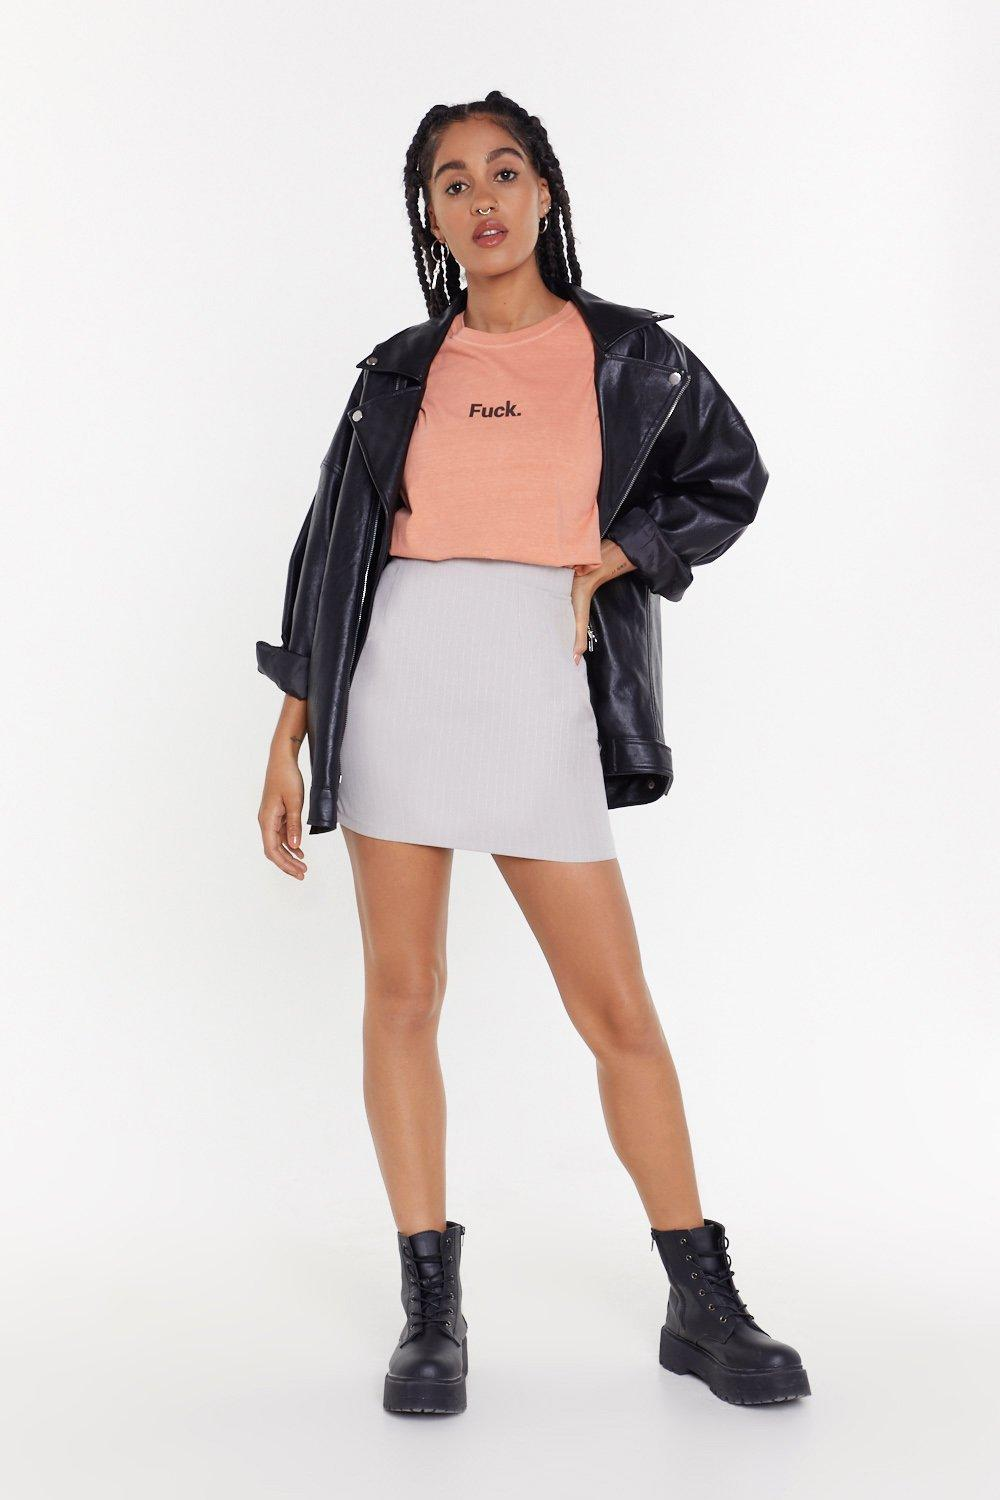 3c68b453d0 All Your Lines Pinstripe Mini Skirt | Shop Clothes at Nasty Gal!